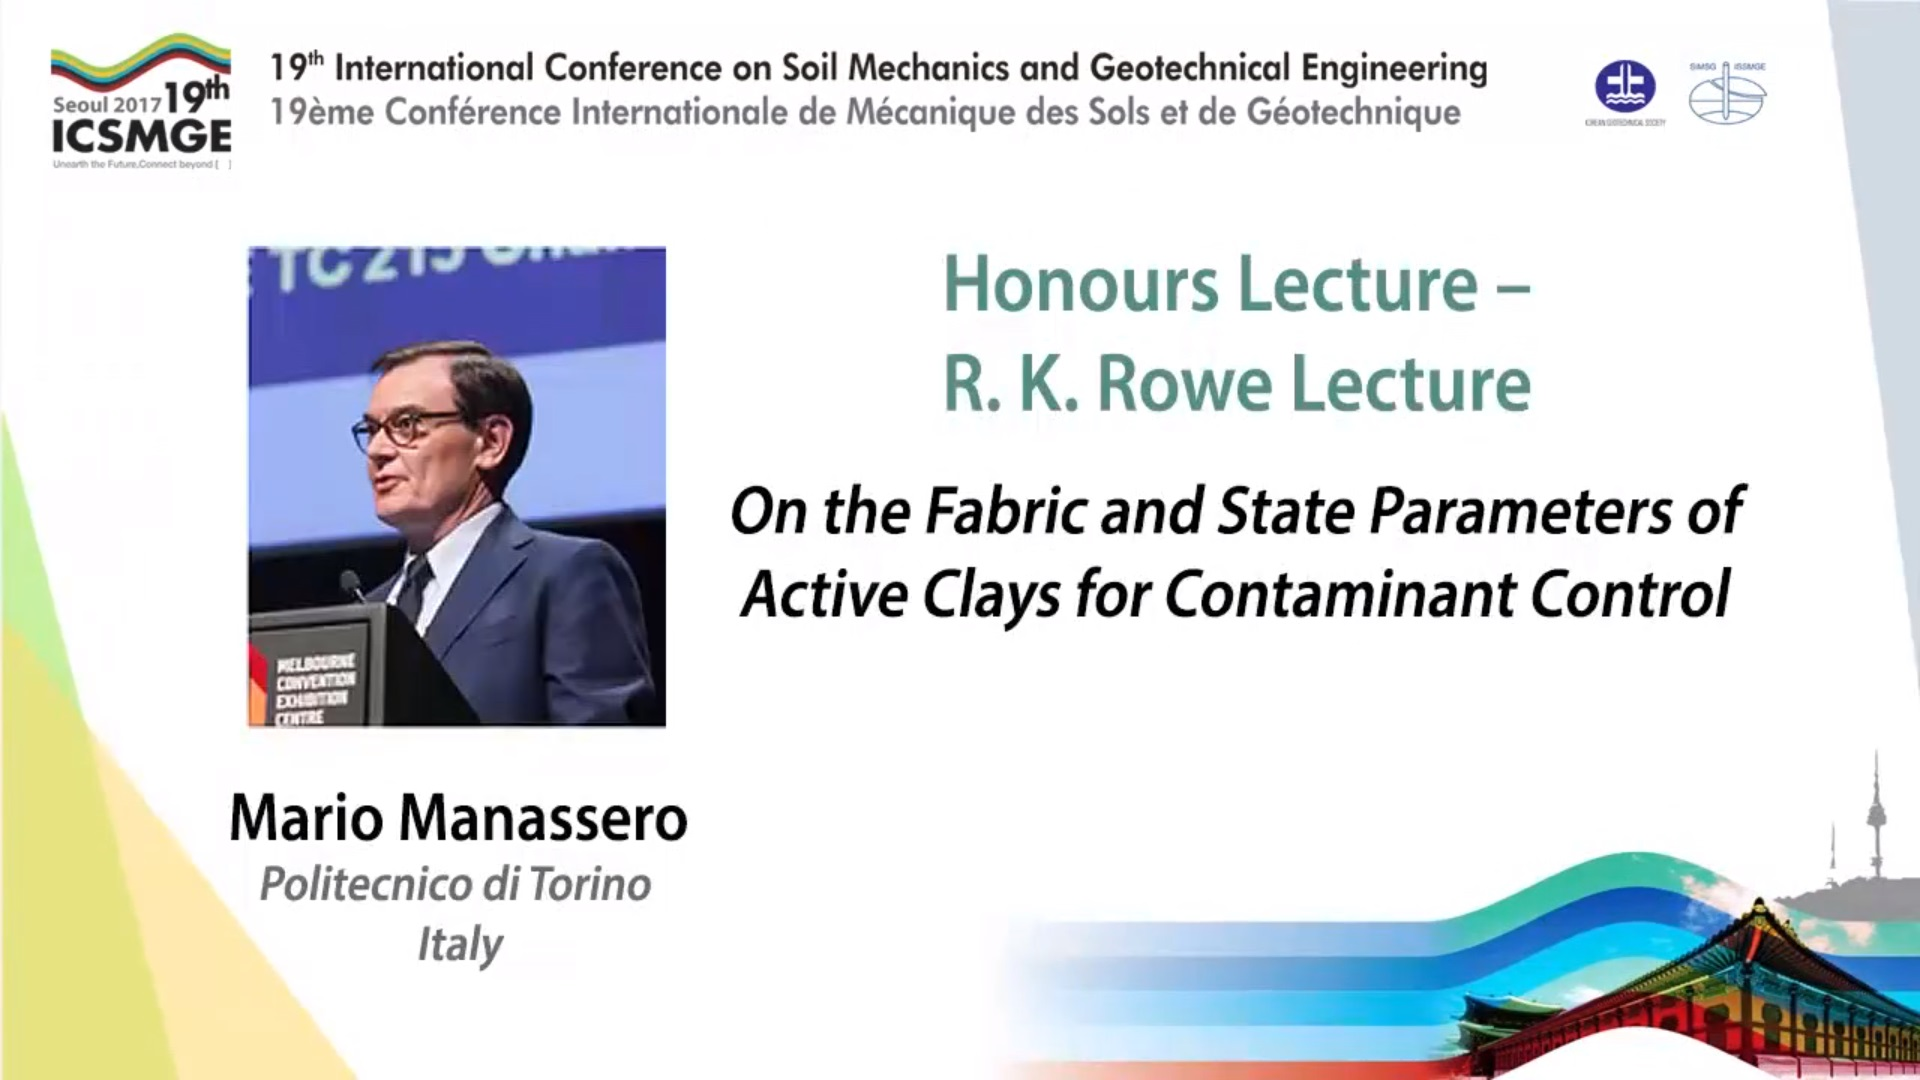 "On the Fabric and State Parameters of Active Clays for Contaminant Control (R. K. Rowe Lecture - 19th ICSMGE) {""category"":""honour_lecture"",""subjects"":[""Contaminant Transport"", ""Soil Mechanics""],""number"":""ICSMGE19114"",""instructors"":[""Mario Manassero""]}"